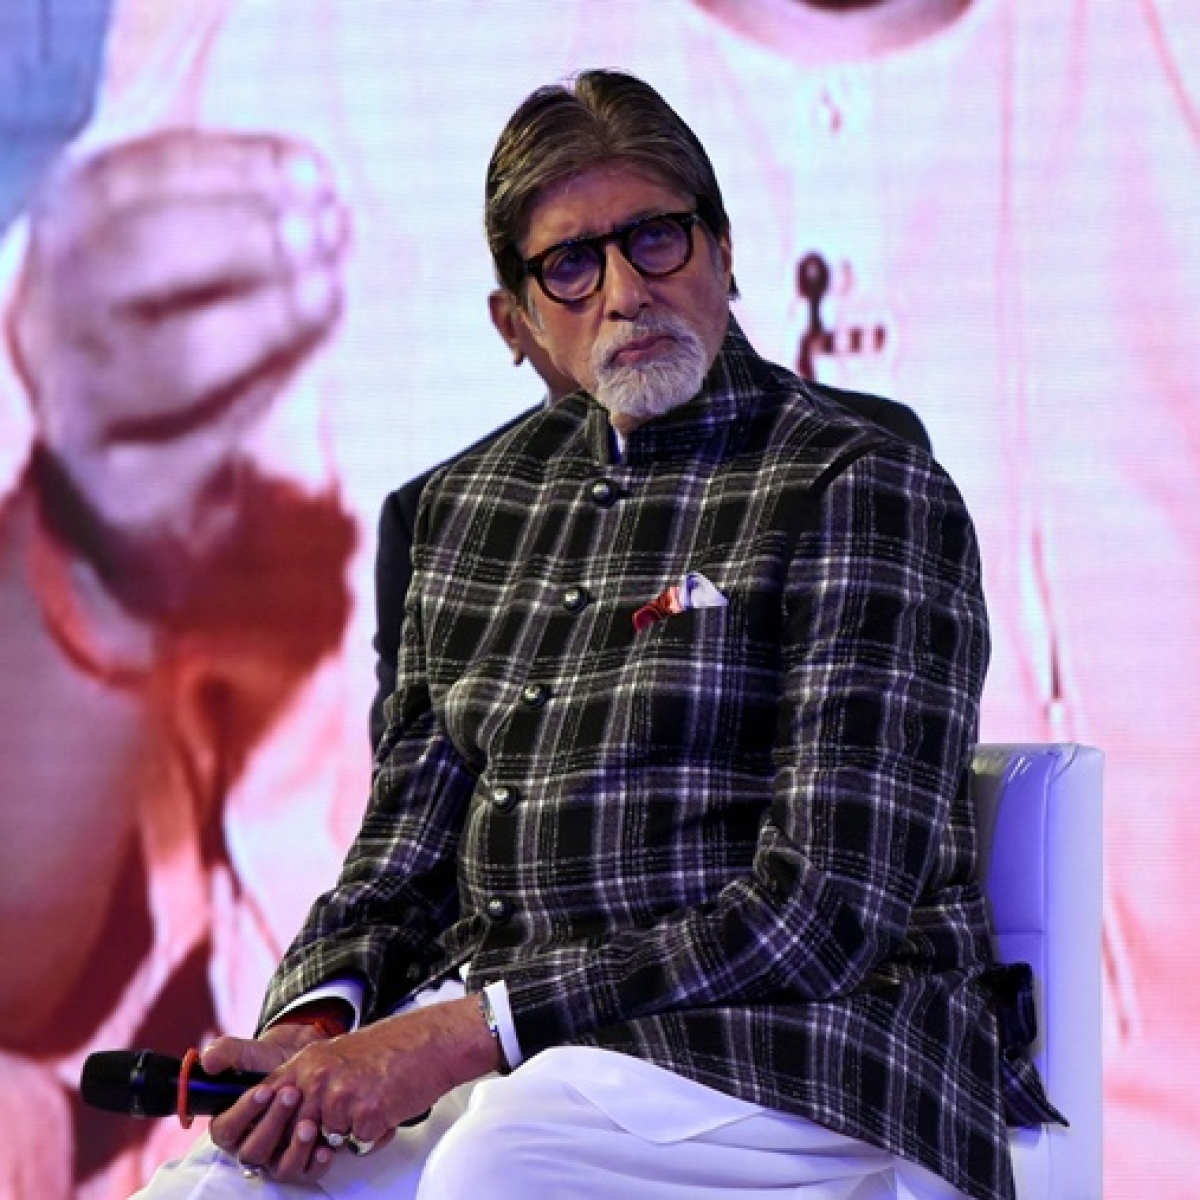 Amitabh Bachchan Health Update: Big B stable with mild symptoms - what we know so far